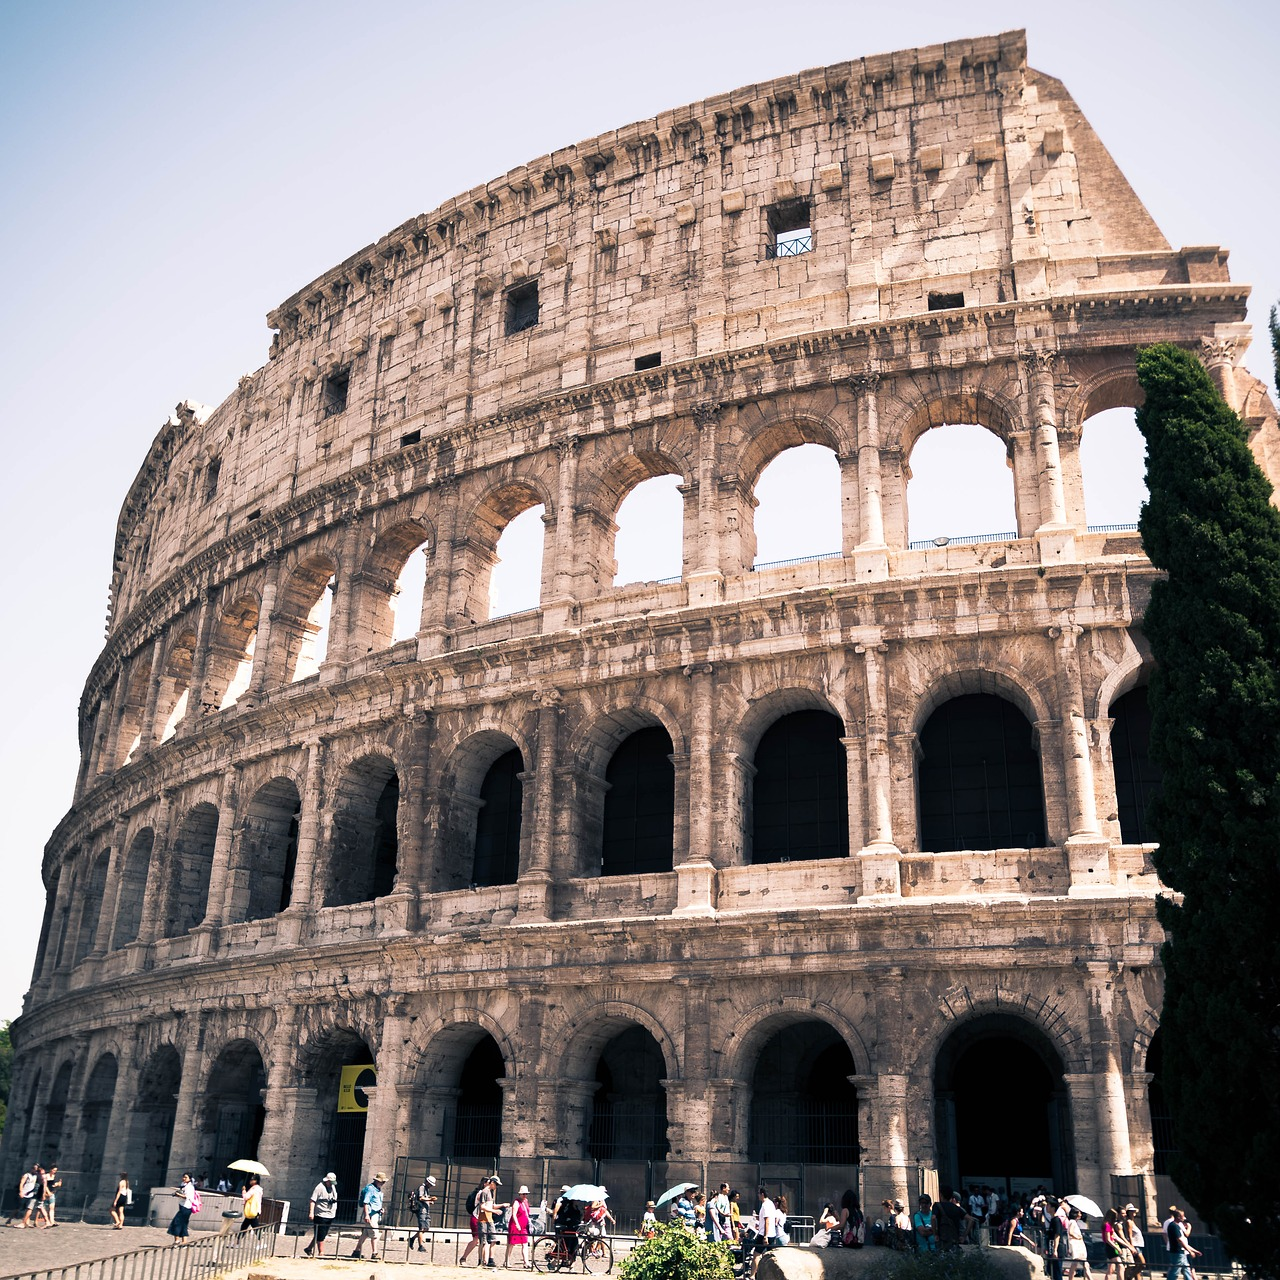 kolosseum,rome,architecture,romeriket,sun,italy,antiquity,antique rome,the colosseum,old,free pictures, free photos, free images, royalty free, free illustrations, public domain